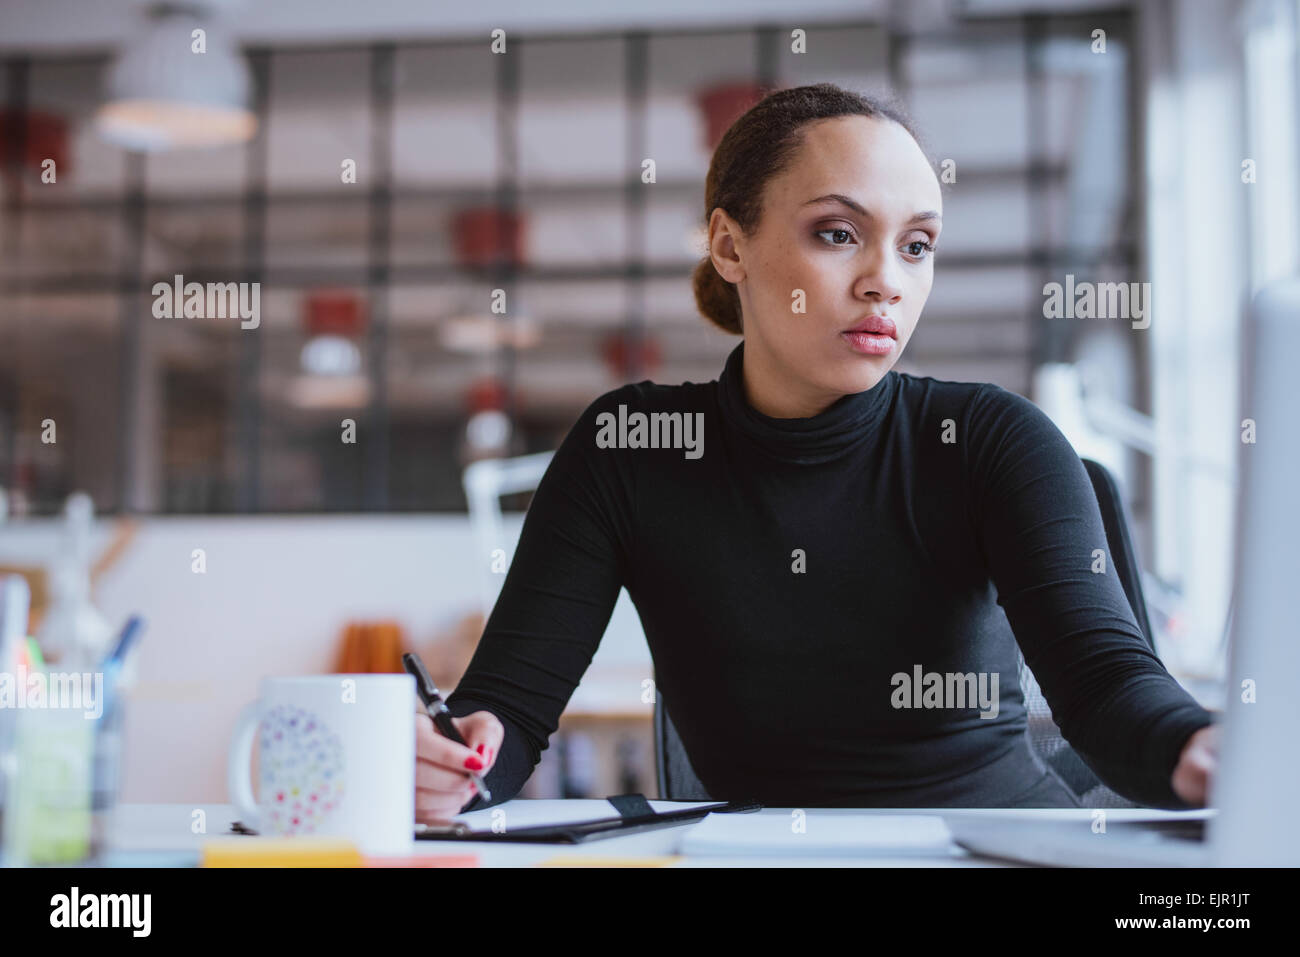 Image of african young woman working new business assignment. Female executive sitting at her desk using laptop - Stock Image